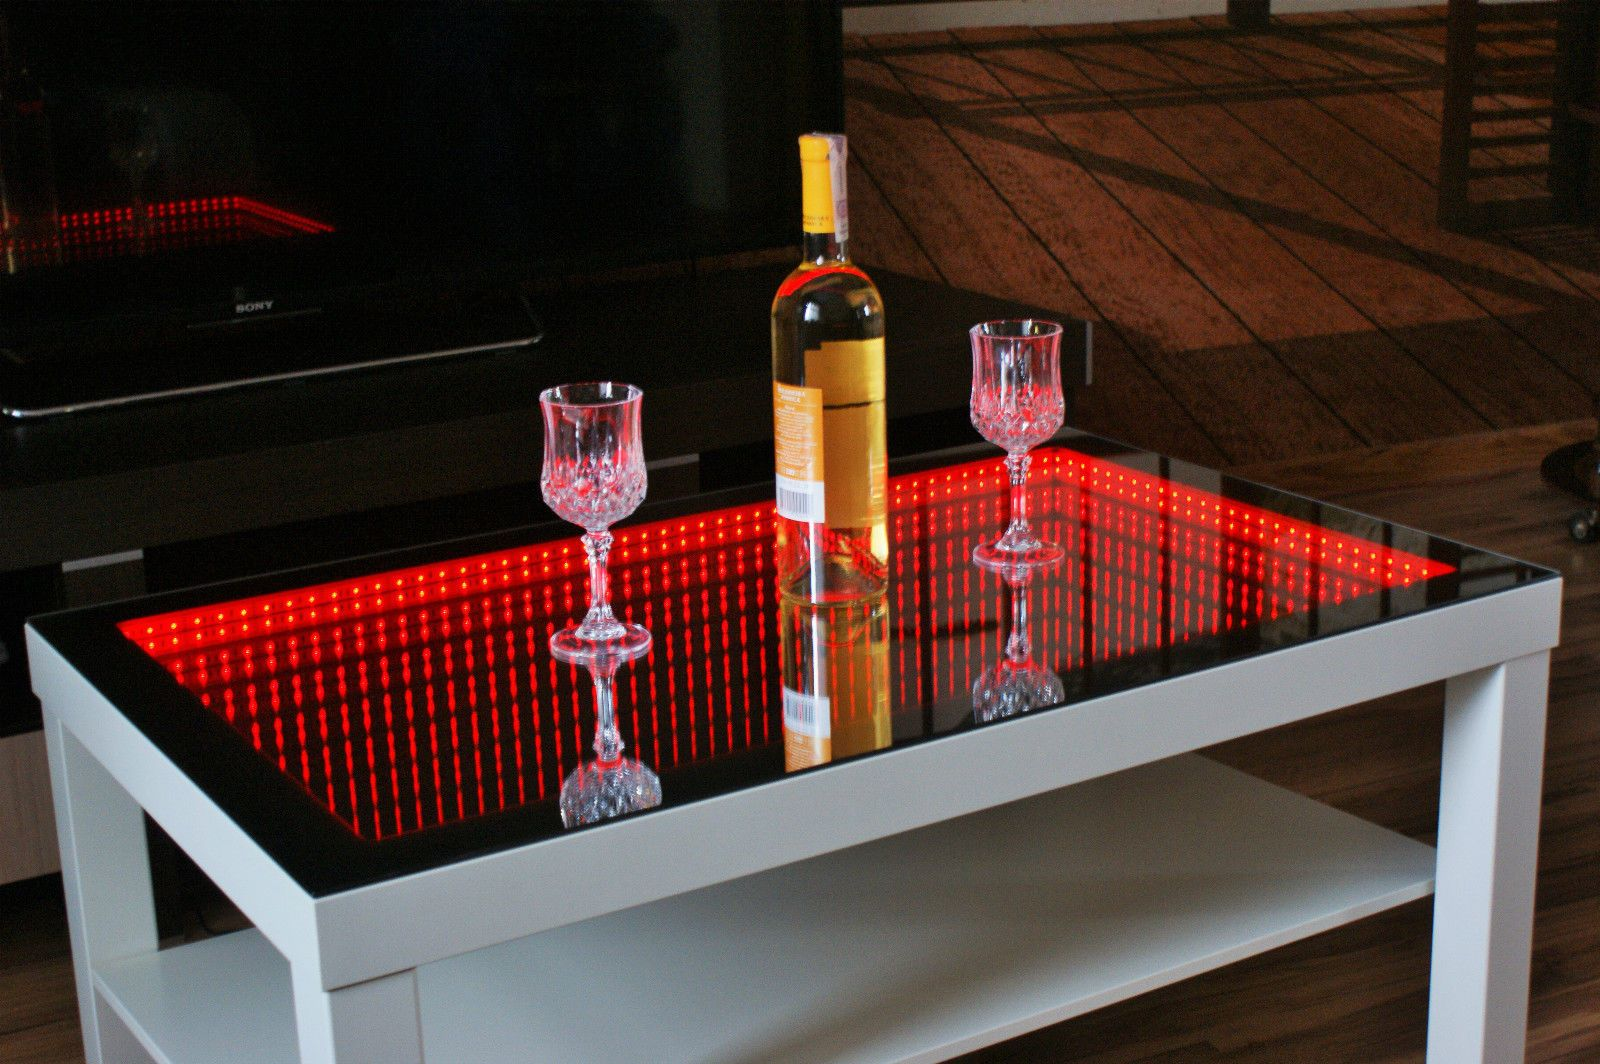 Led Couchtisch Led Couchtisch Poco Couch Thumbnail Imagejpg Couchtisch